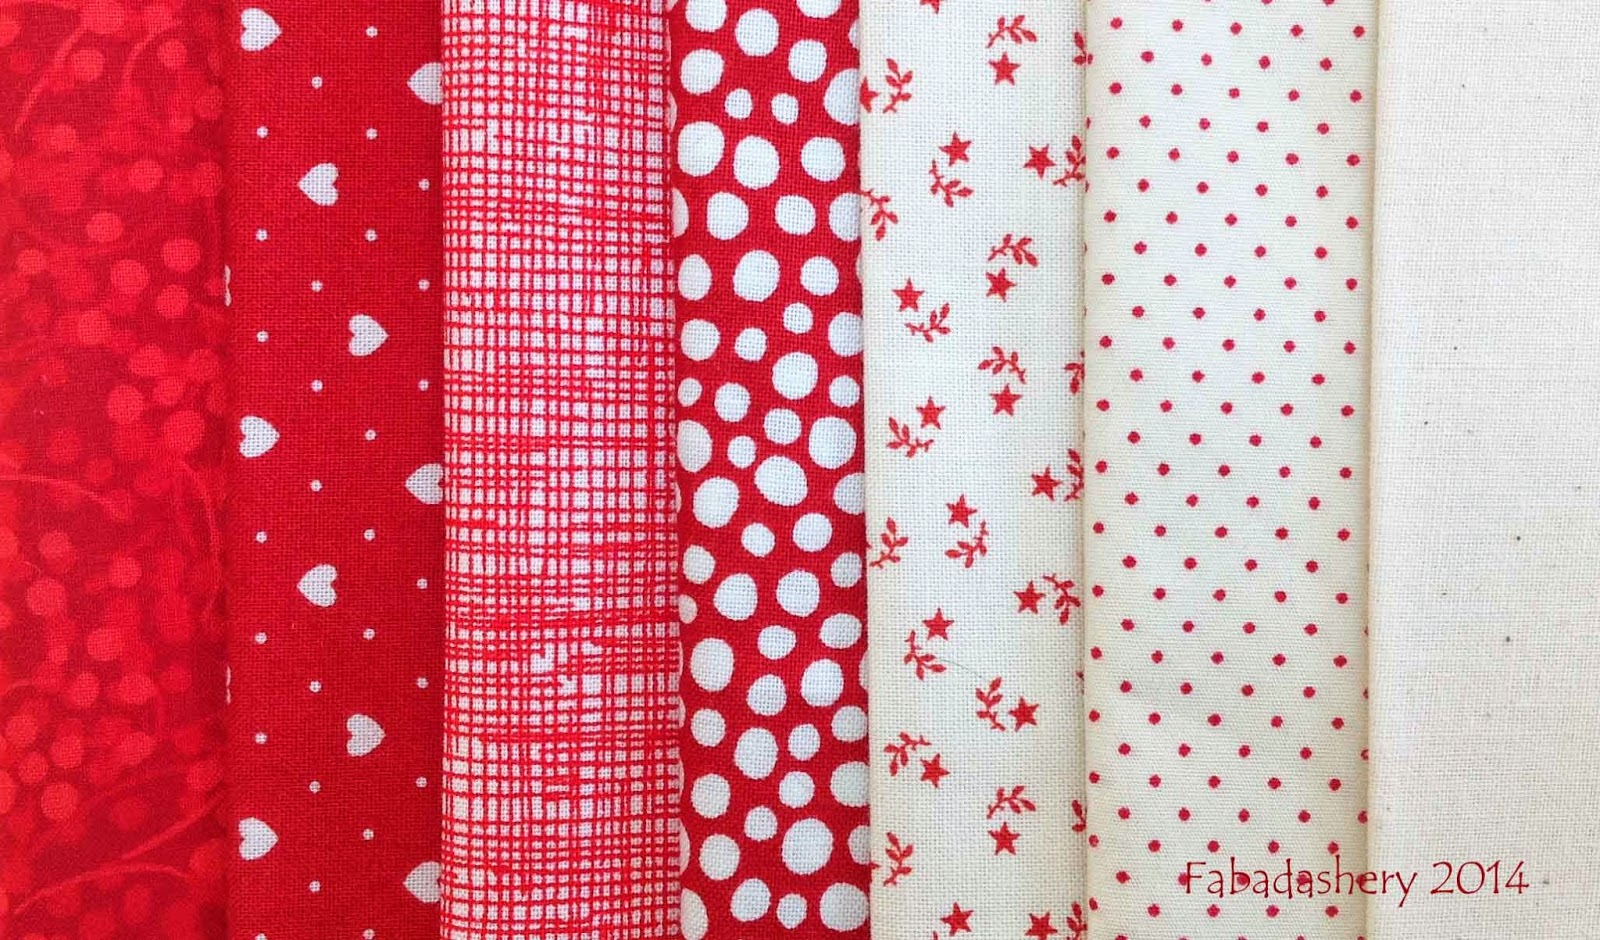 Red and white patchwork fabrics - Nearly Insane Quilt